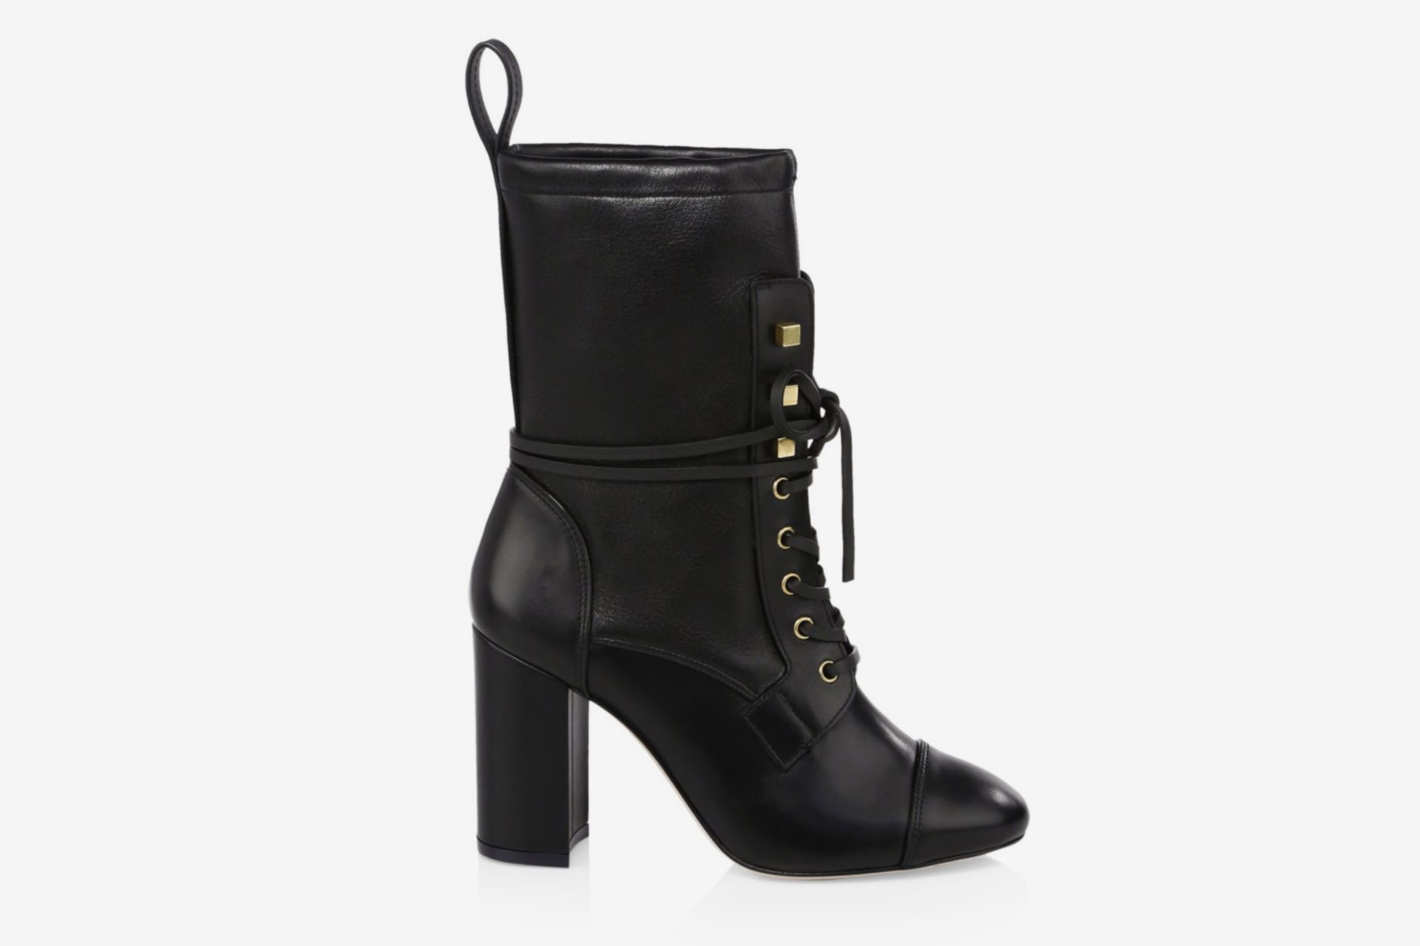 Stuart Weitzman Veruka Leather Boots